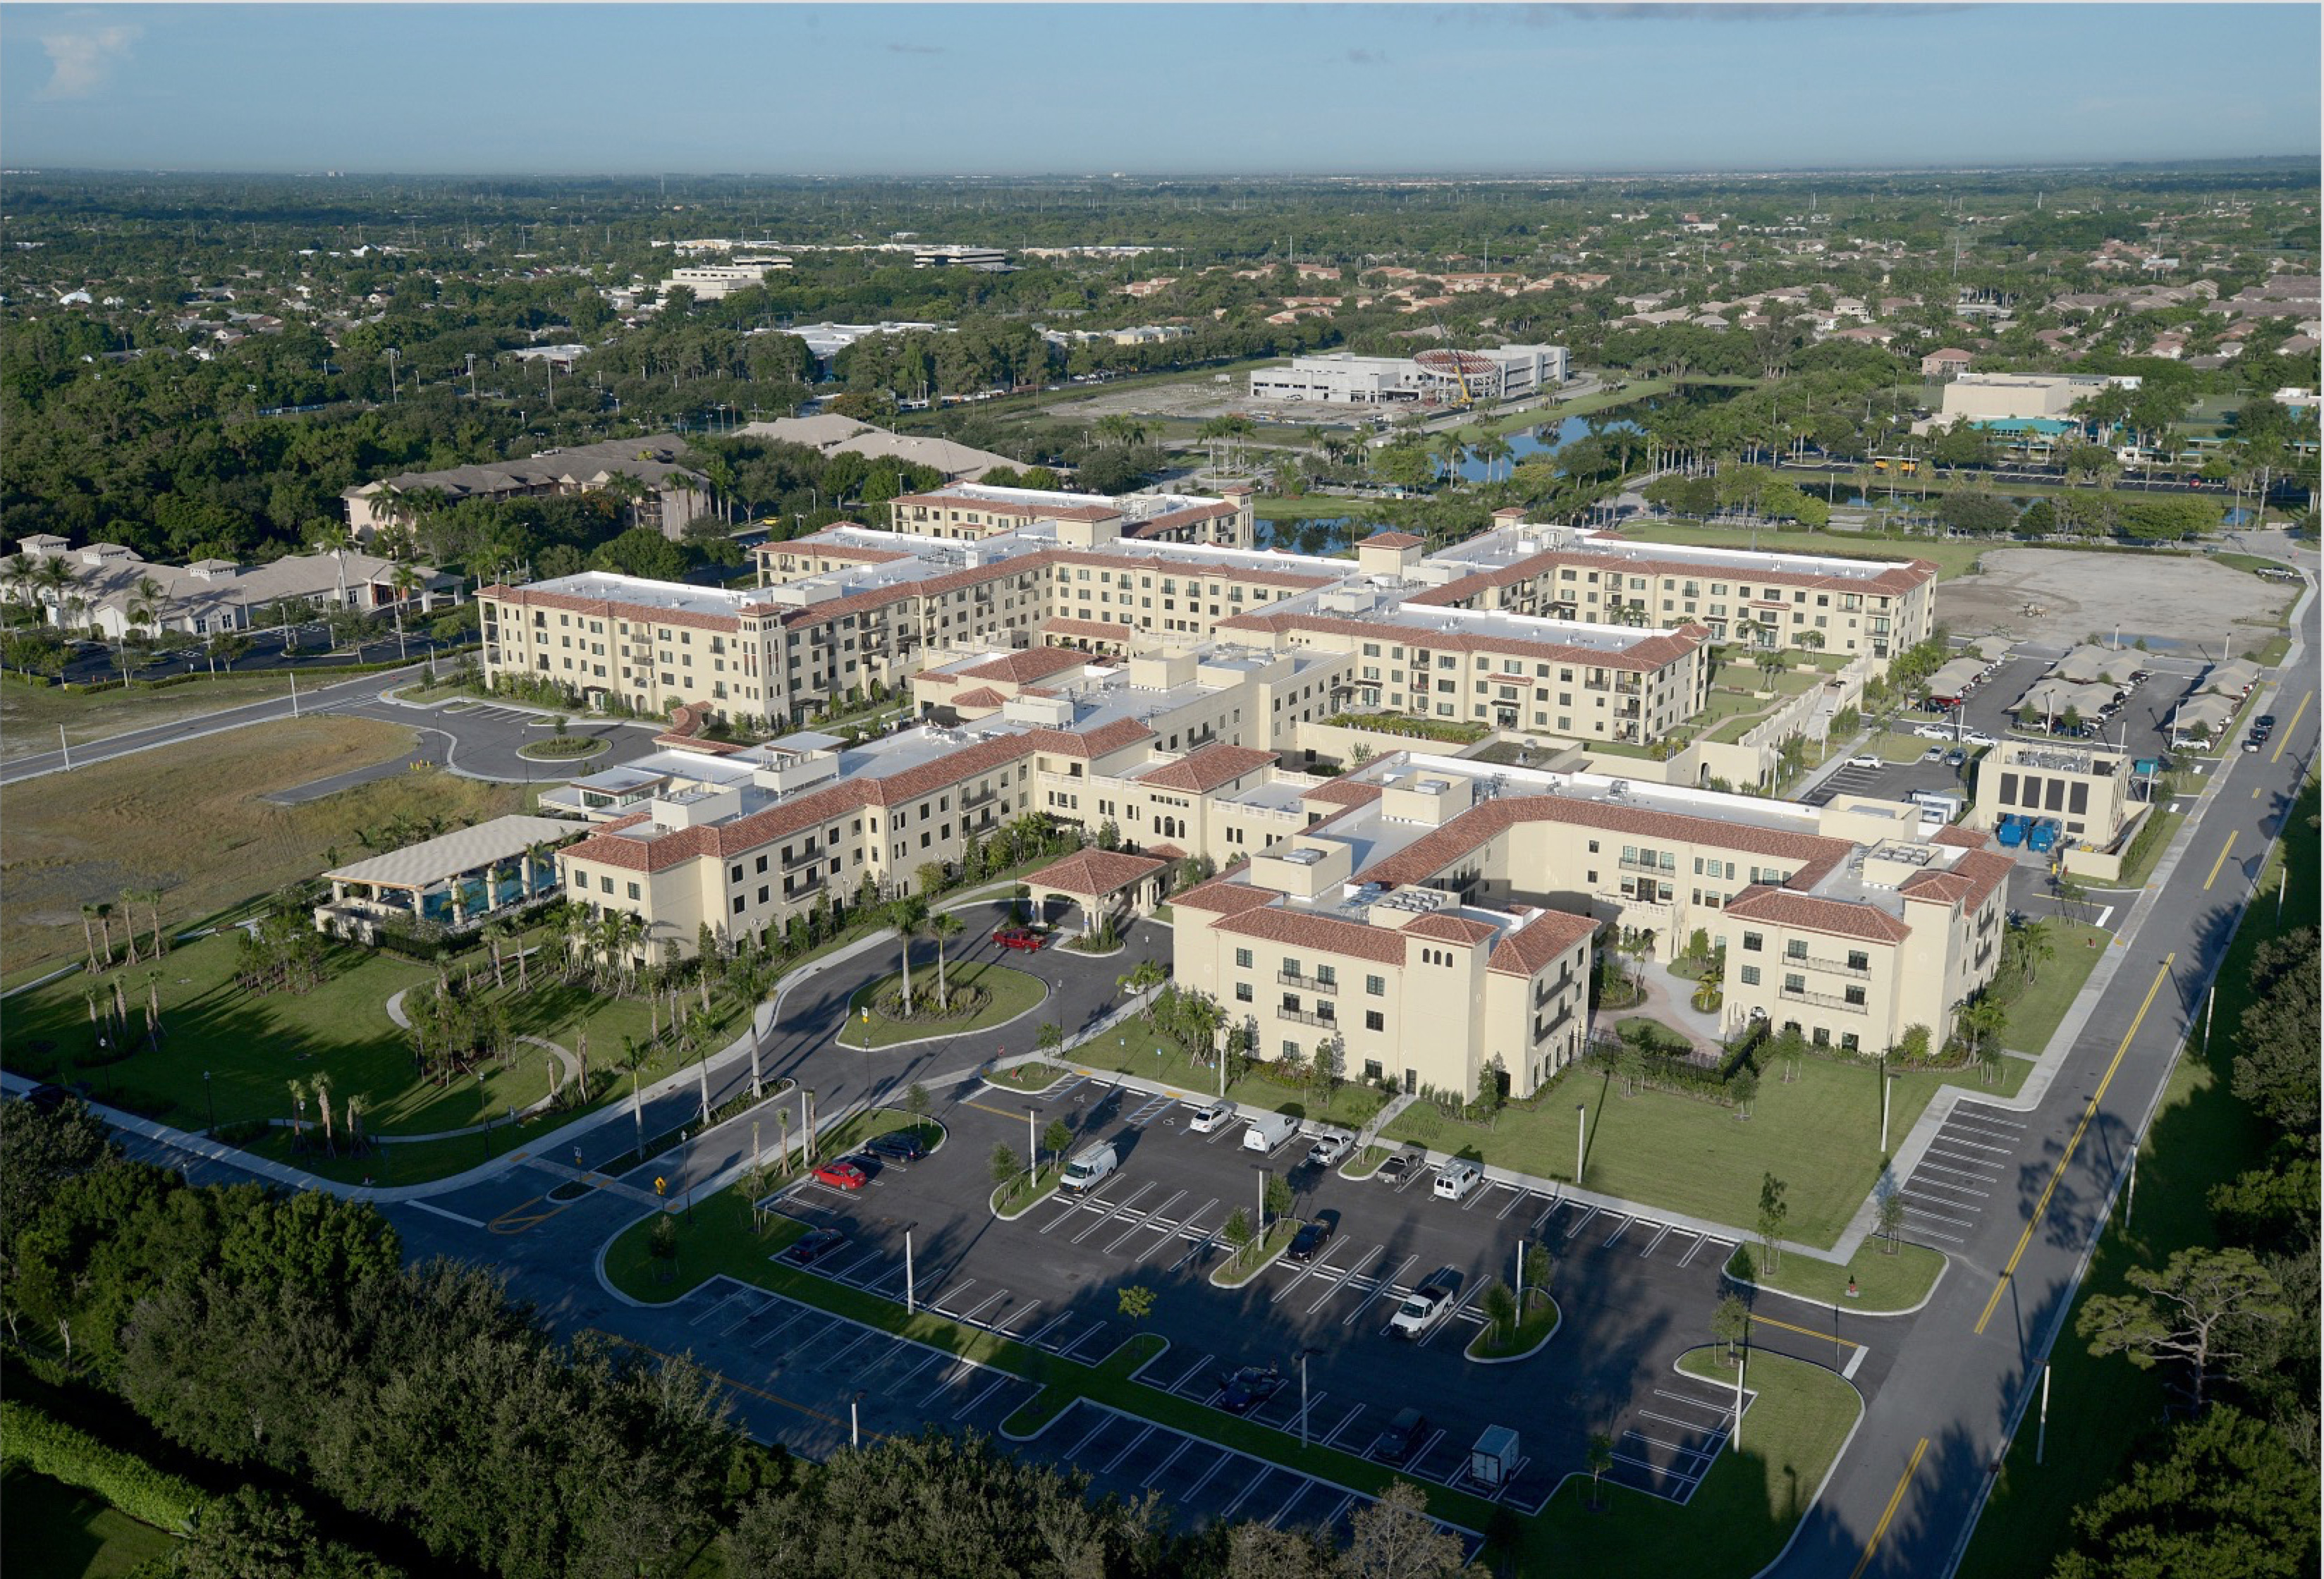 Our electrical contracting firm in Palm City, Stryker Electric, has been a major electrical contractor for healthcare and assistant living facilities across the Southeast USA, including the Sinai Residences.